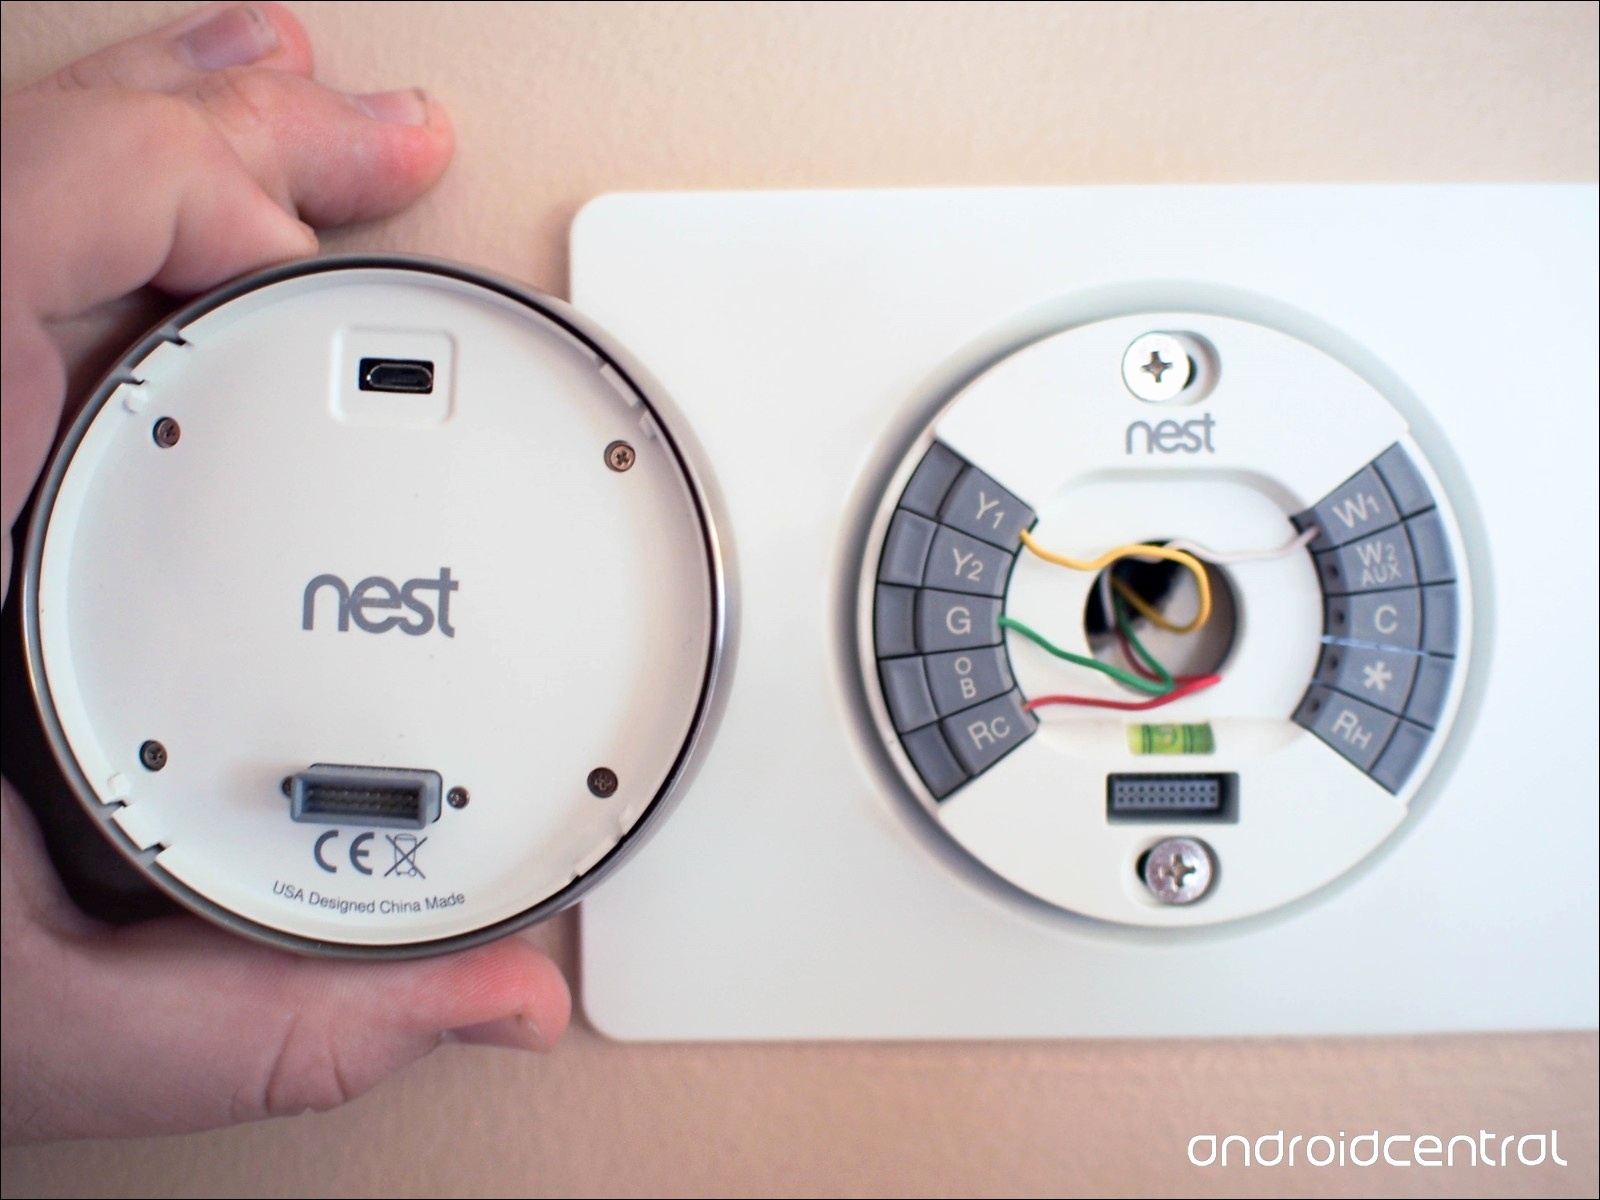 Nest Thermostat Wiring Diagram Heat Pump Best Of Nest Thermostat - Nest Wiring Diagram With Heat Pump